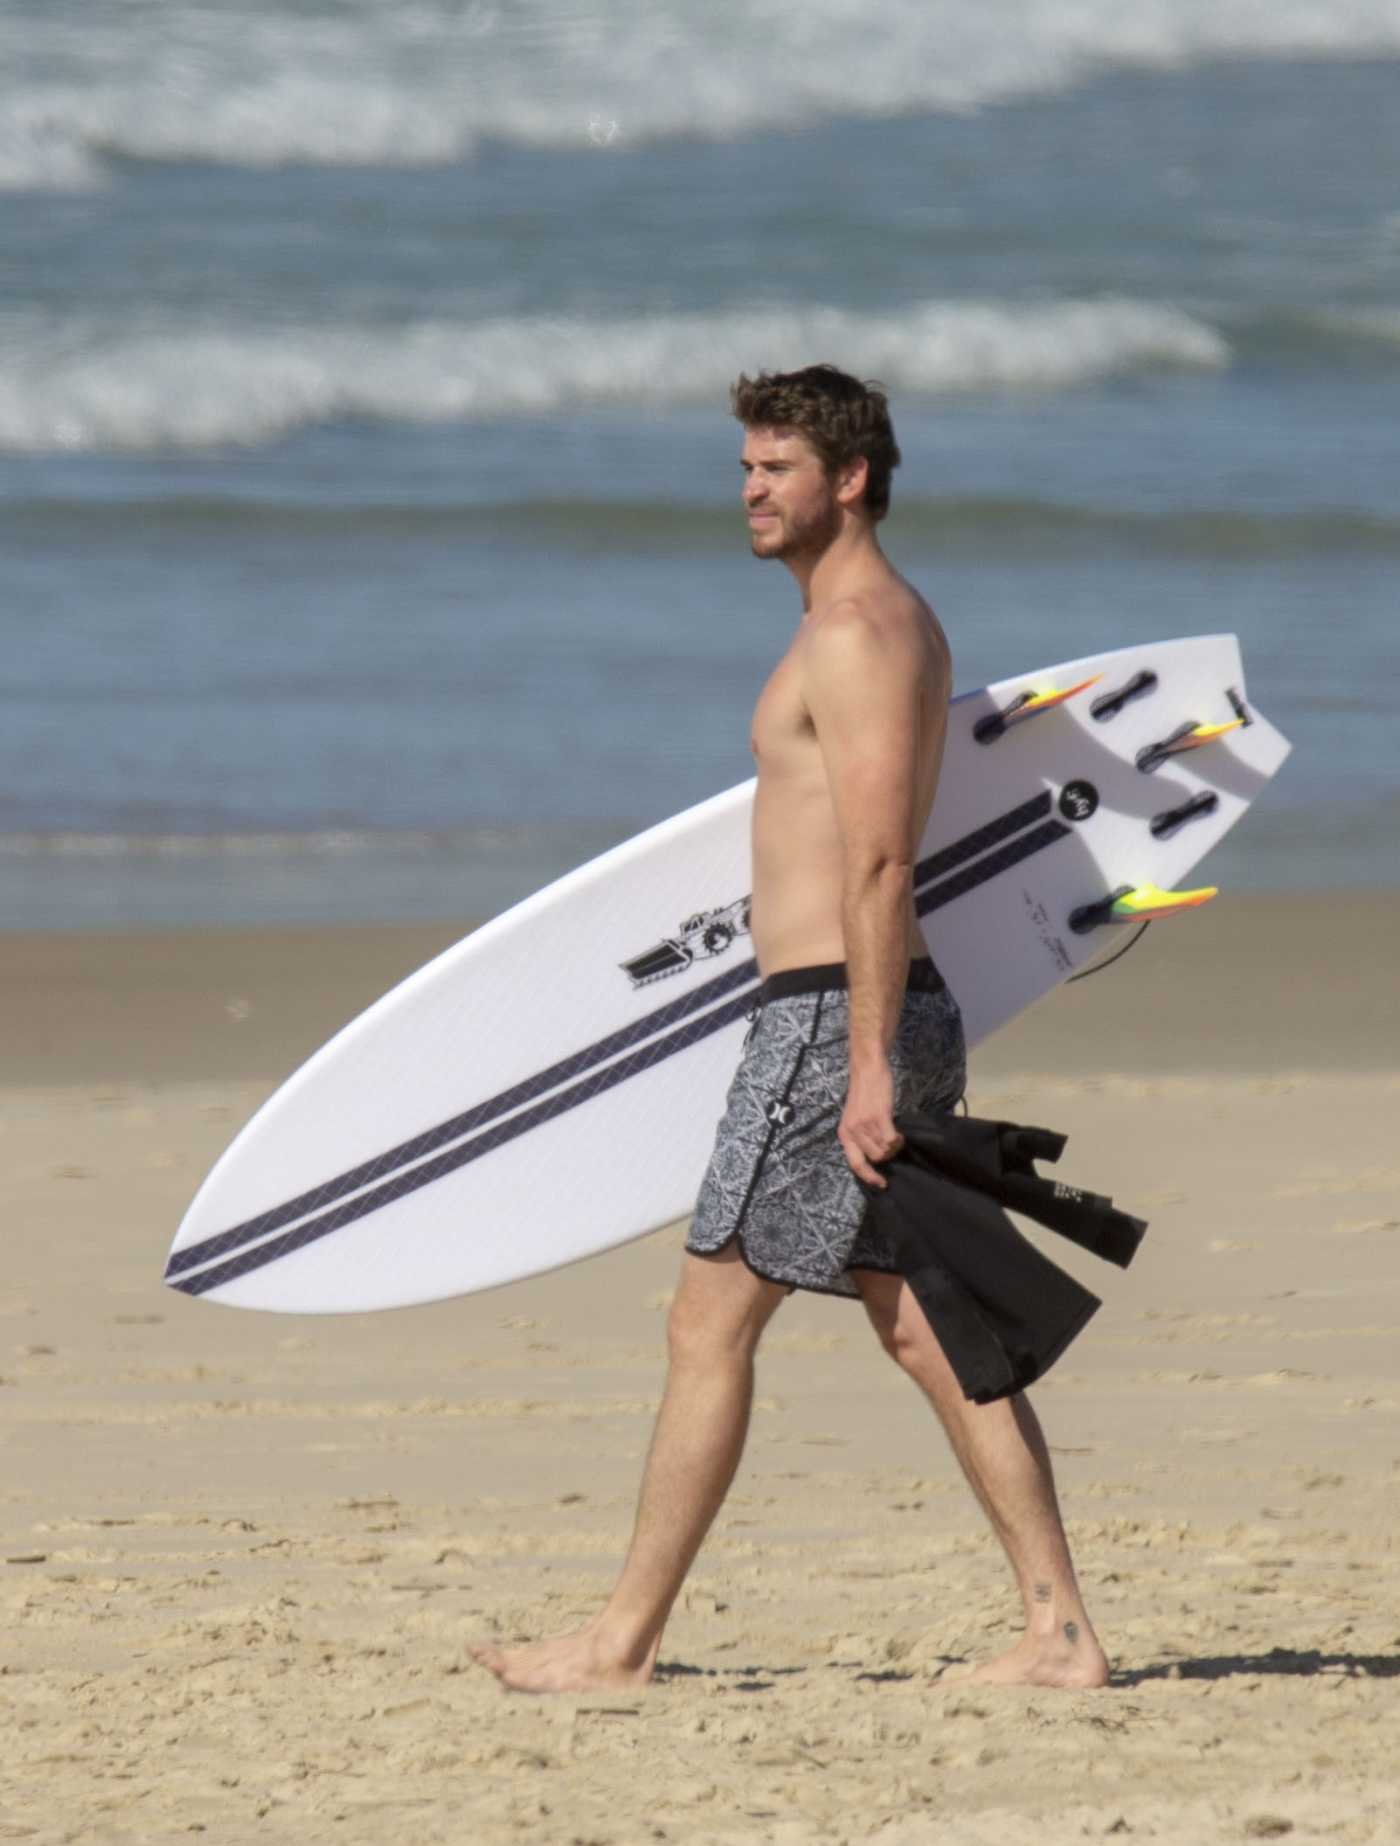 Liam Hemsworth Surfs on the Beach in Byron Bay 05/23/2019